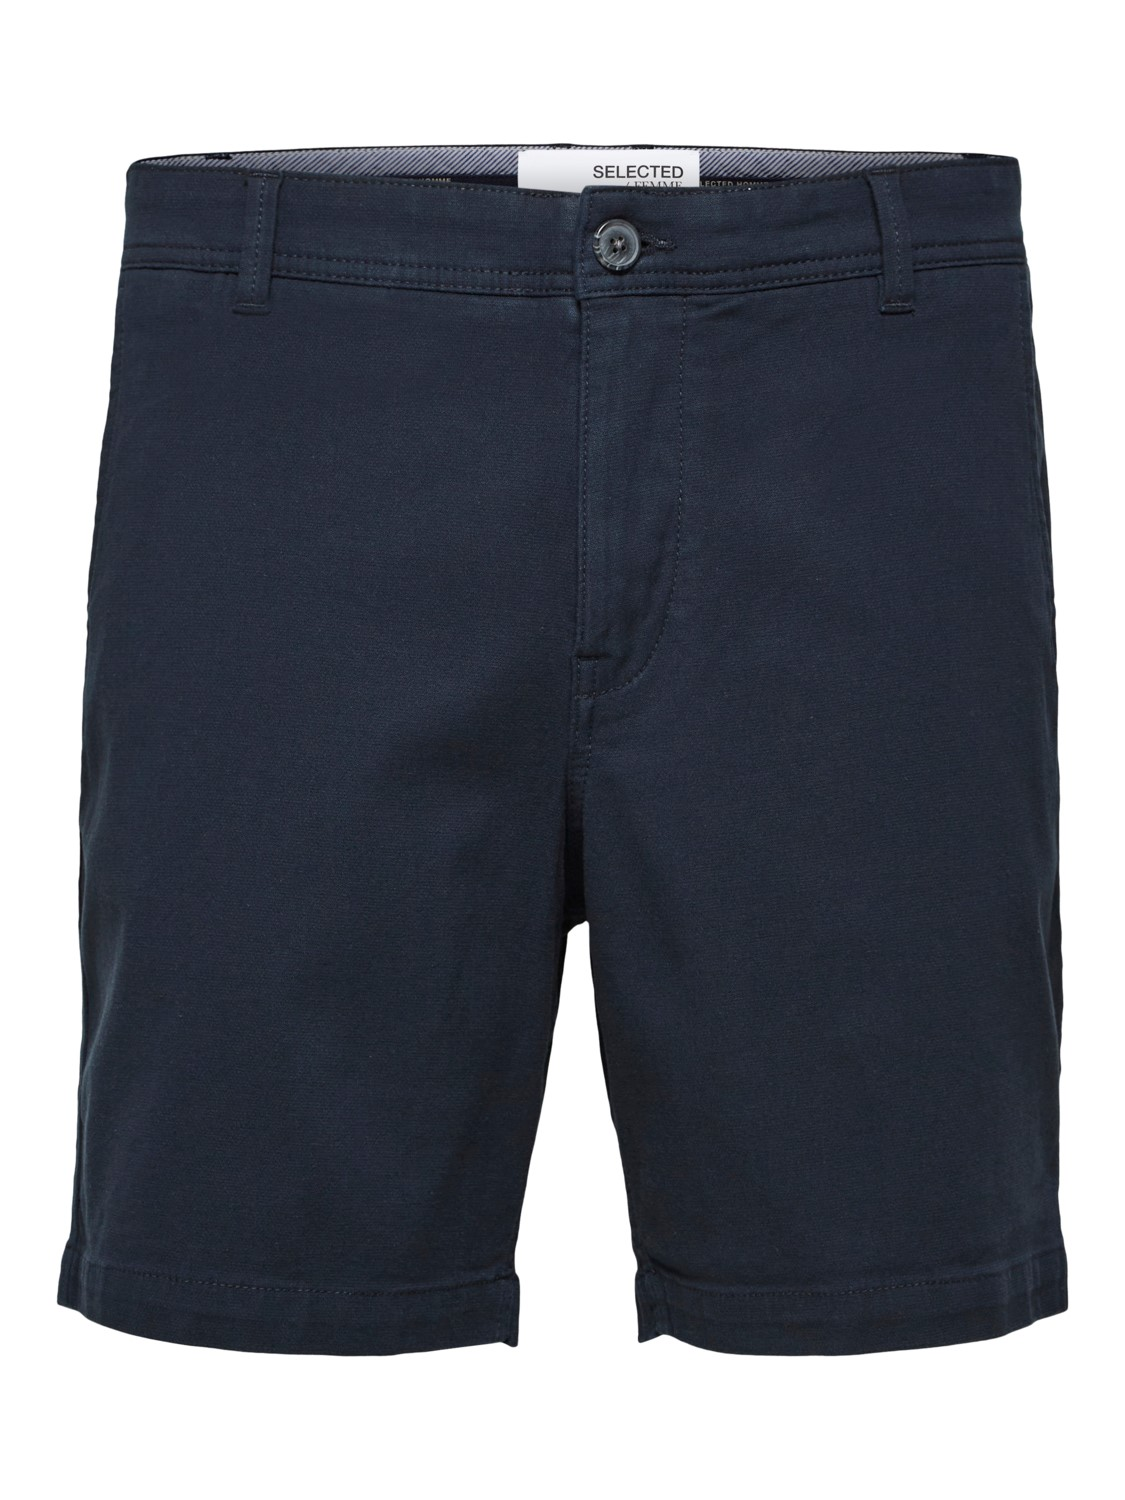 SELECTED SLHSTORM FLEX SHORTS Navy | Gate36 Hobro